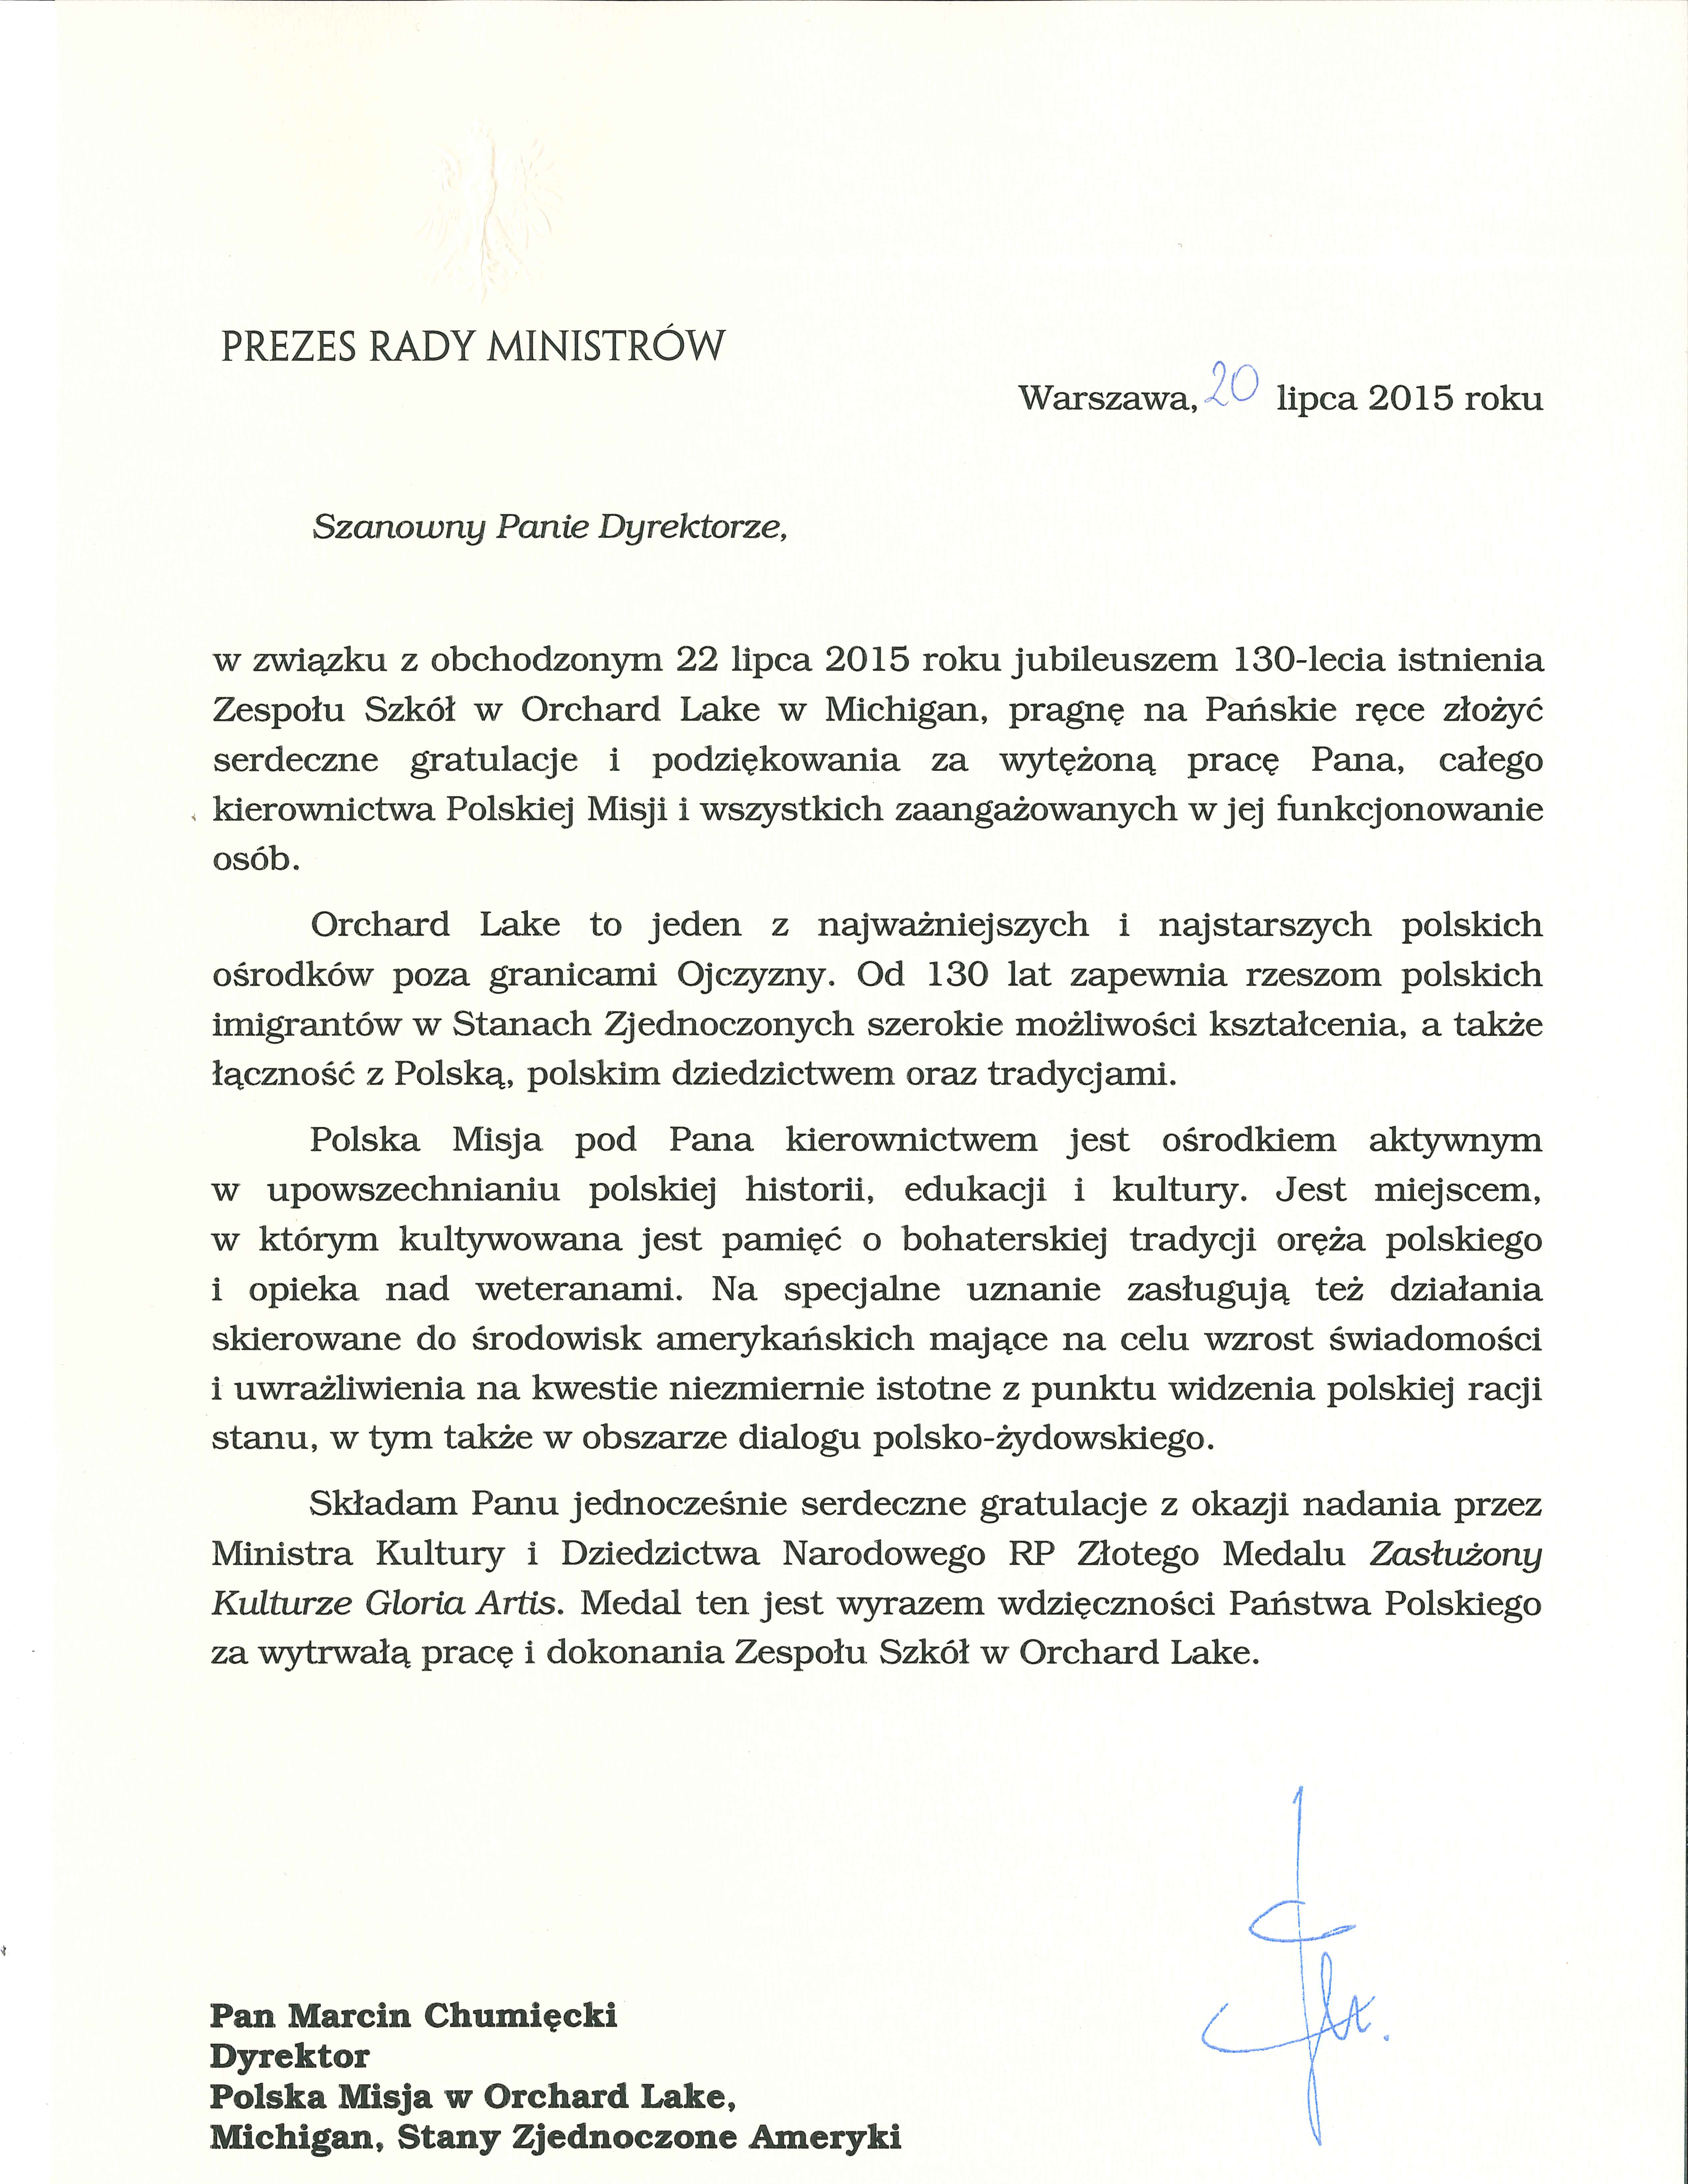 ministry support letter template Collection-Prime Minister of the Republic of Poland 1-h